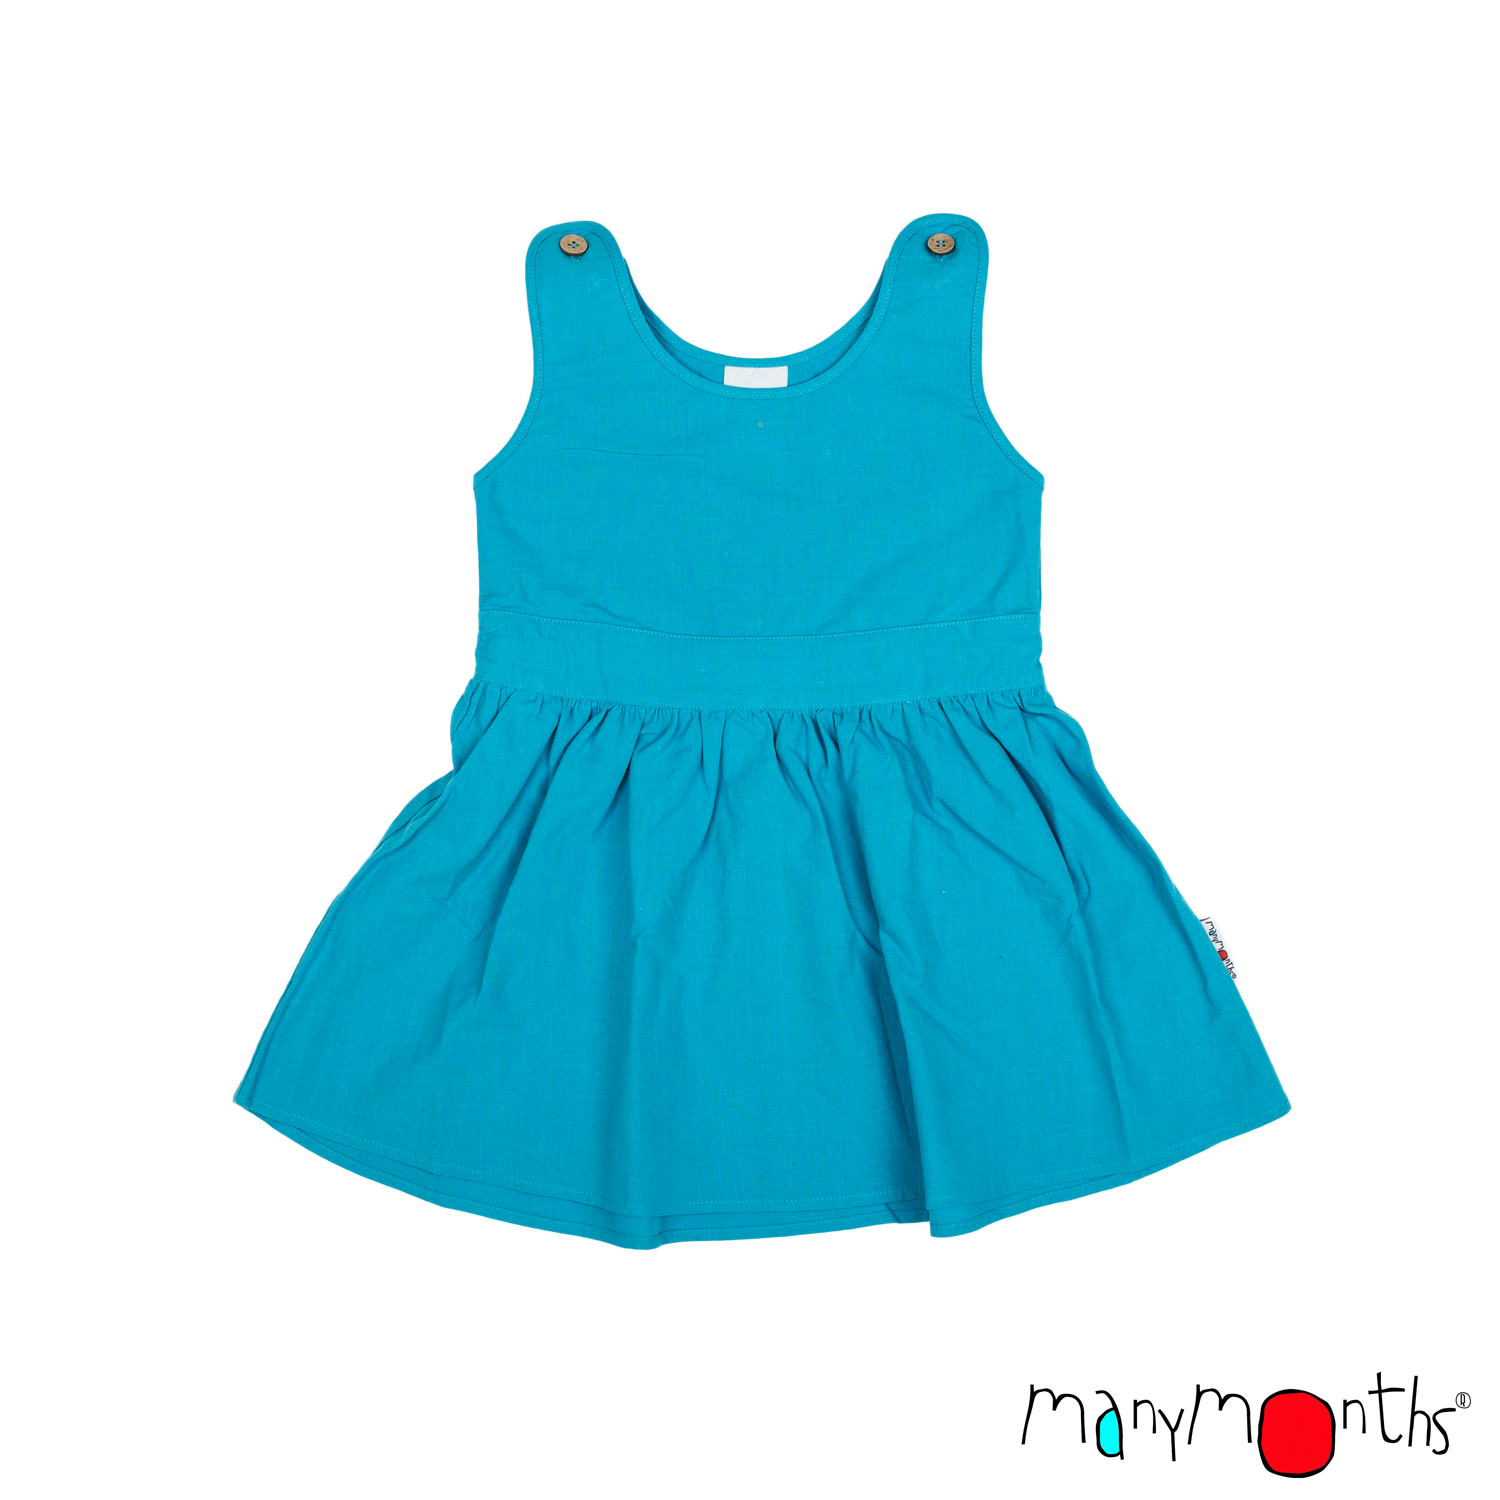 ManyMonths ECO Hempies Summer Dress with Bow